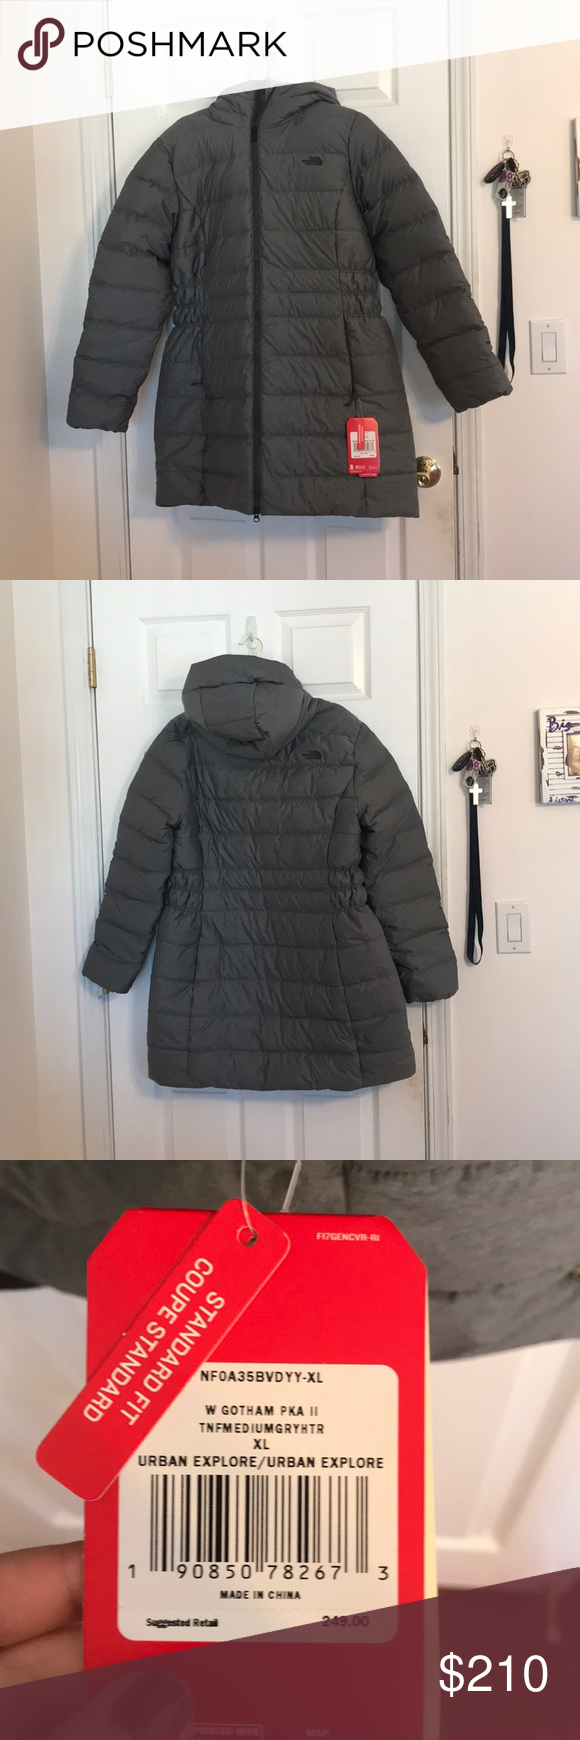 Brand New Women S Long North Face Jacket Long North Face Jacket North Face Jacket Jackets [ 1740 x 580 Pixel ]